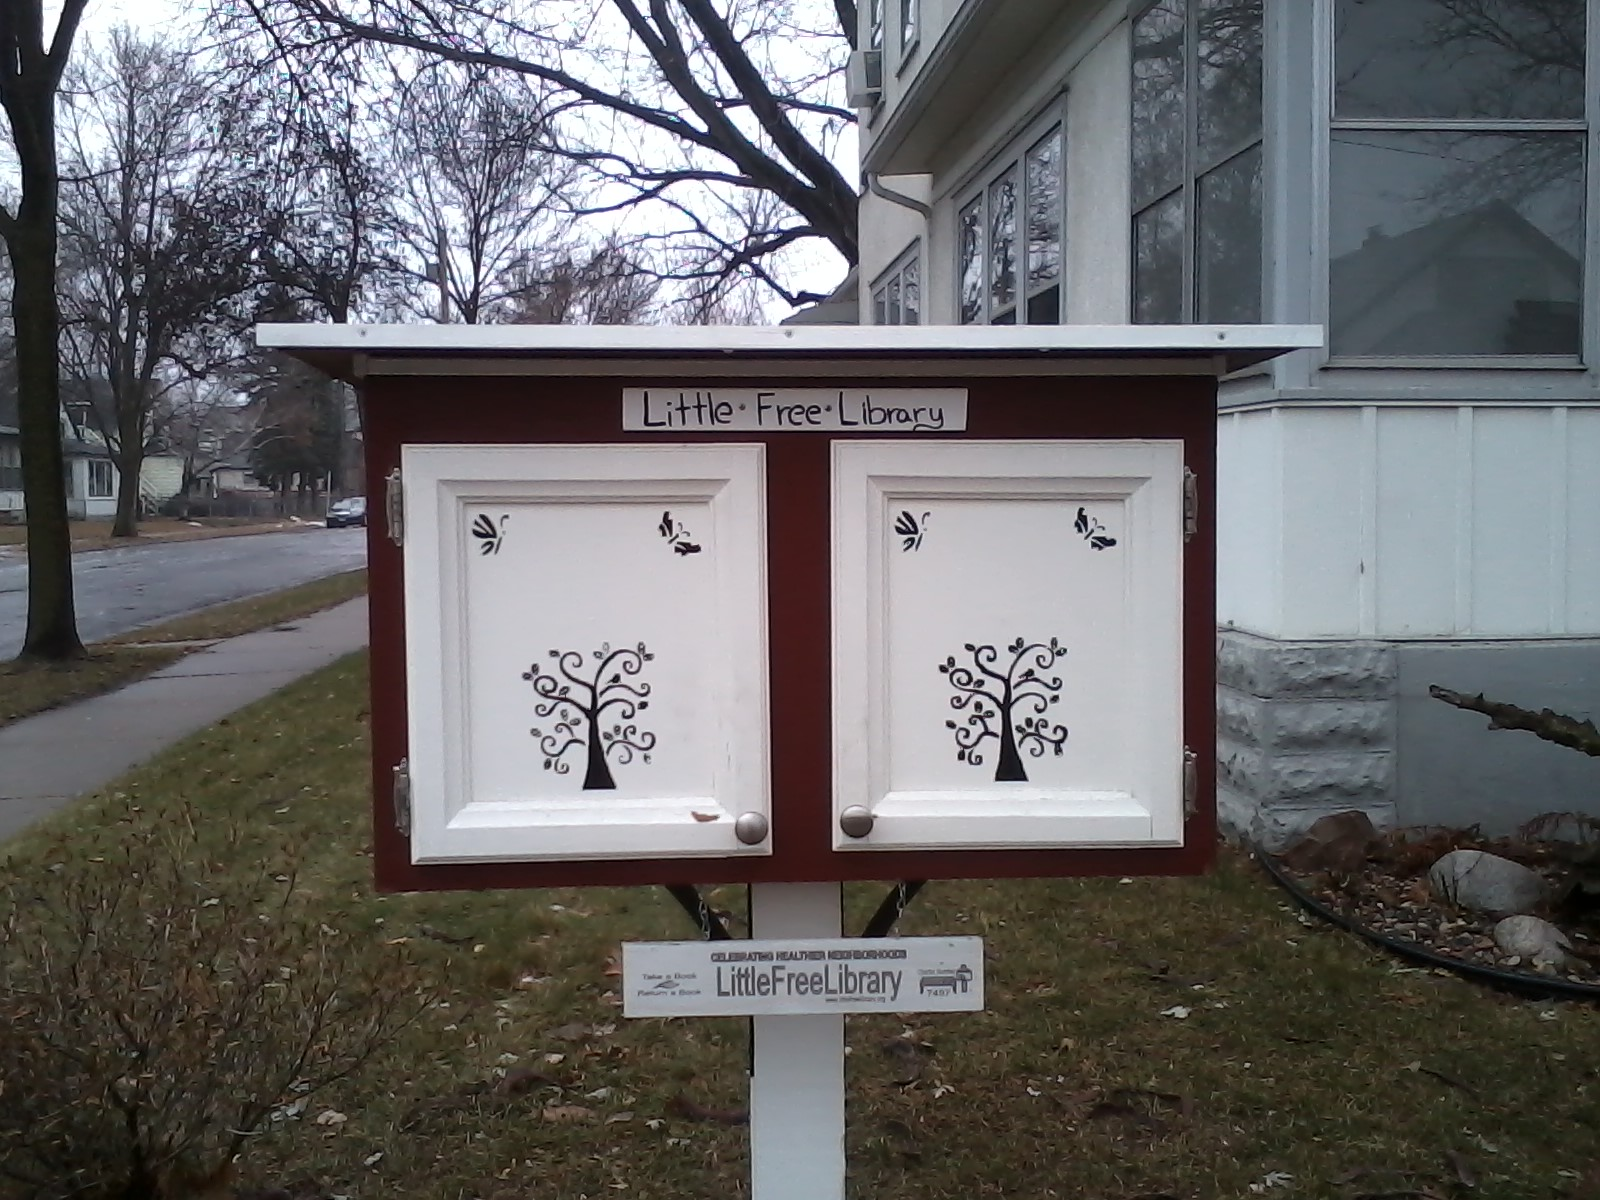 Little Free Library in the Bottineau Neighborhood